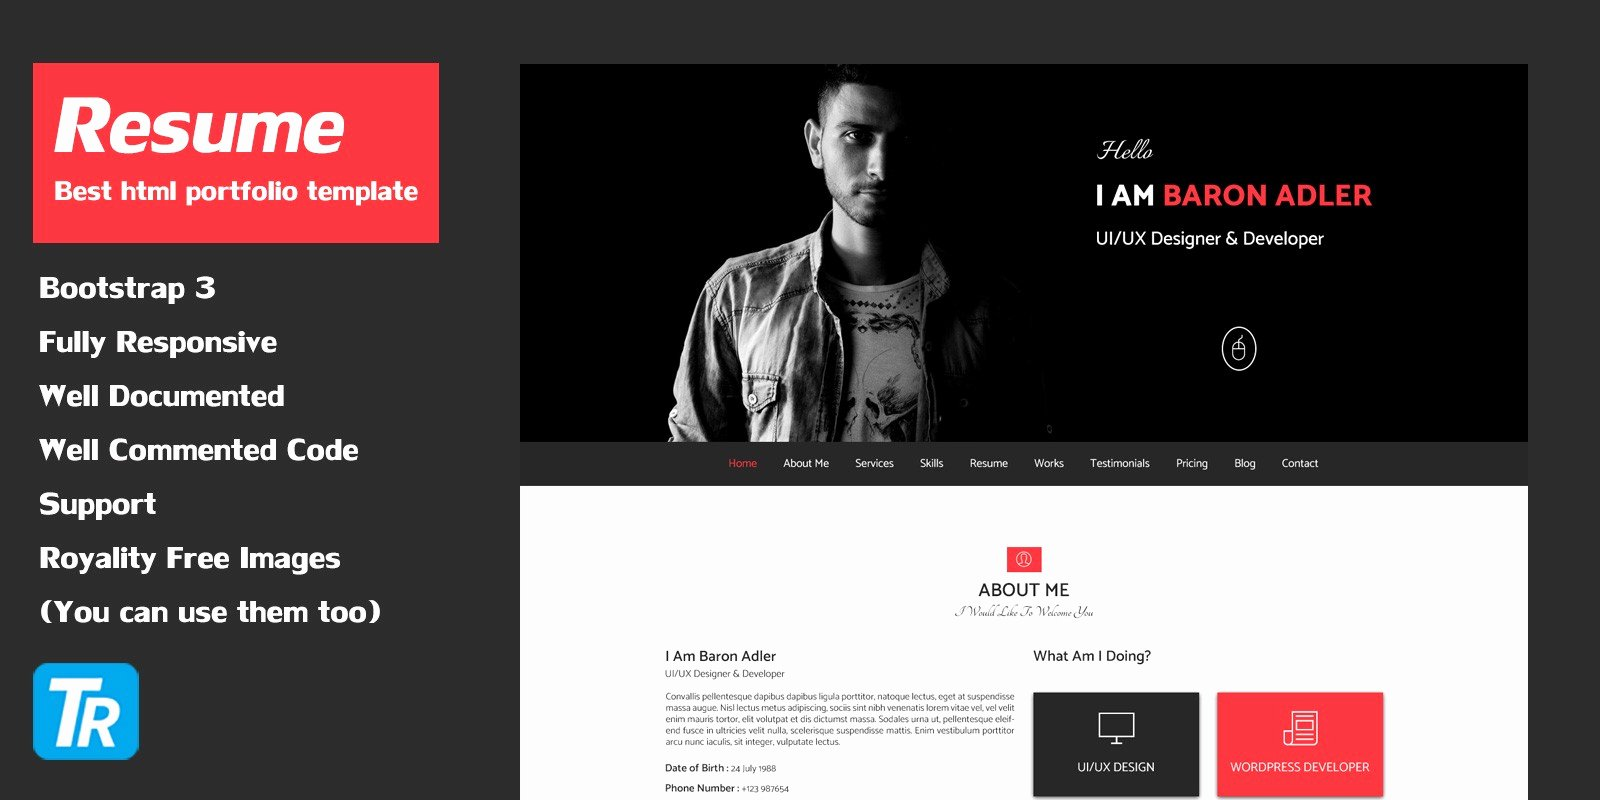 Resume Website Template Free Unique Resume Personal Portfolio Web Template